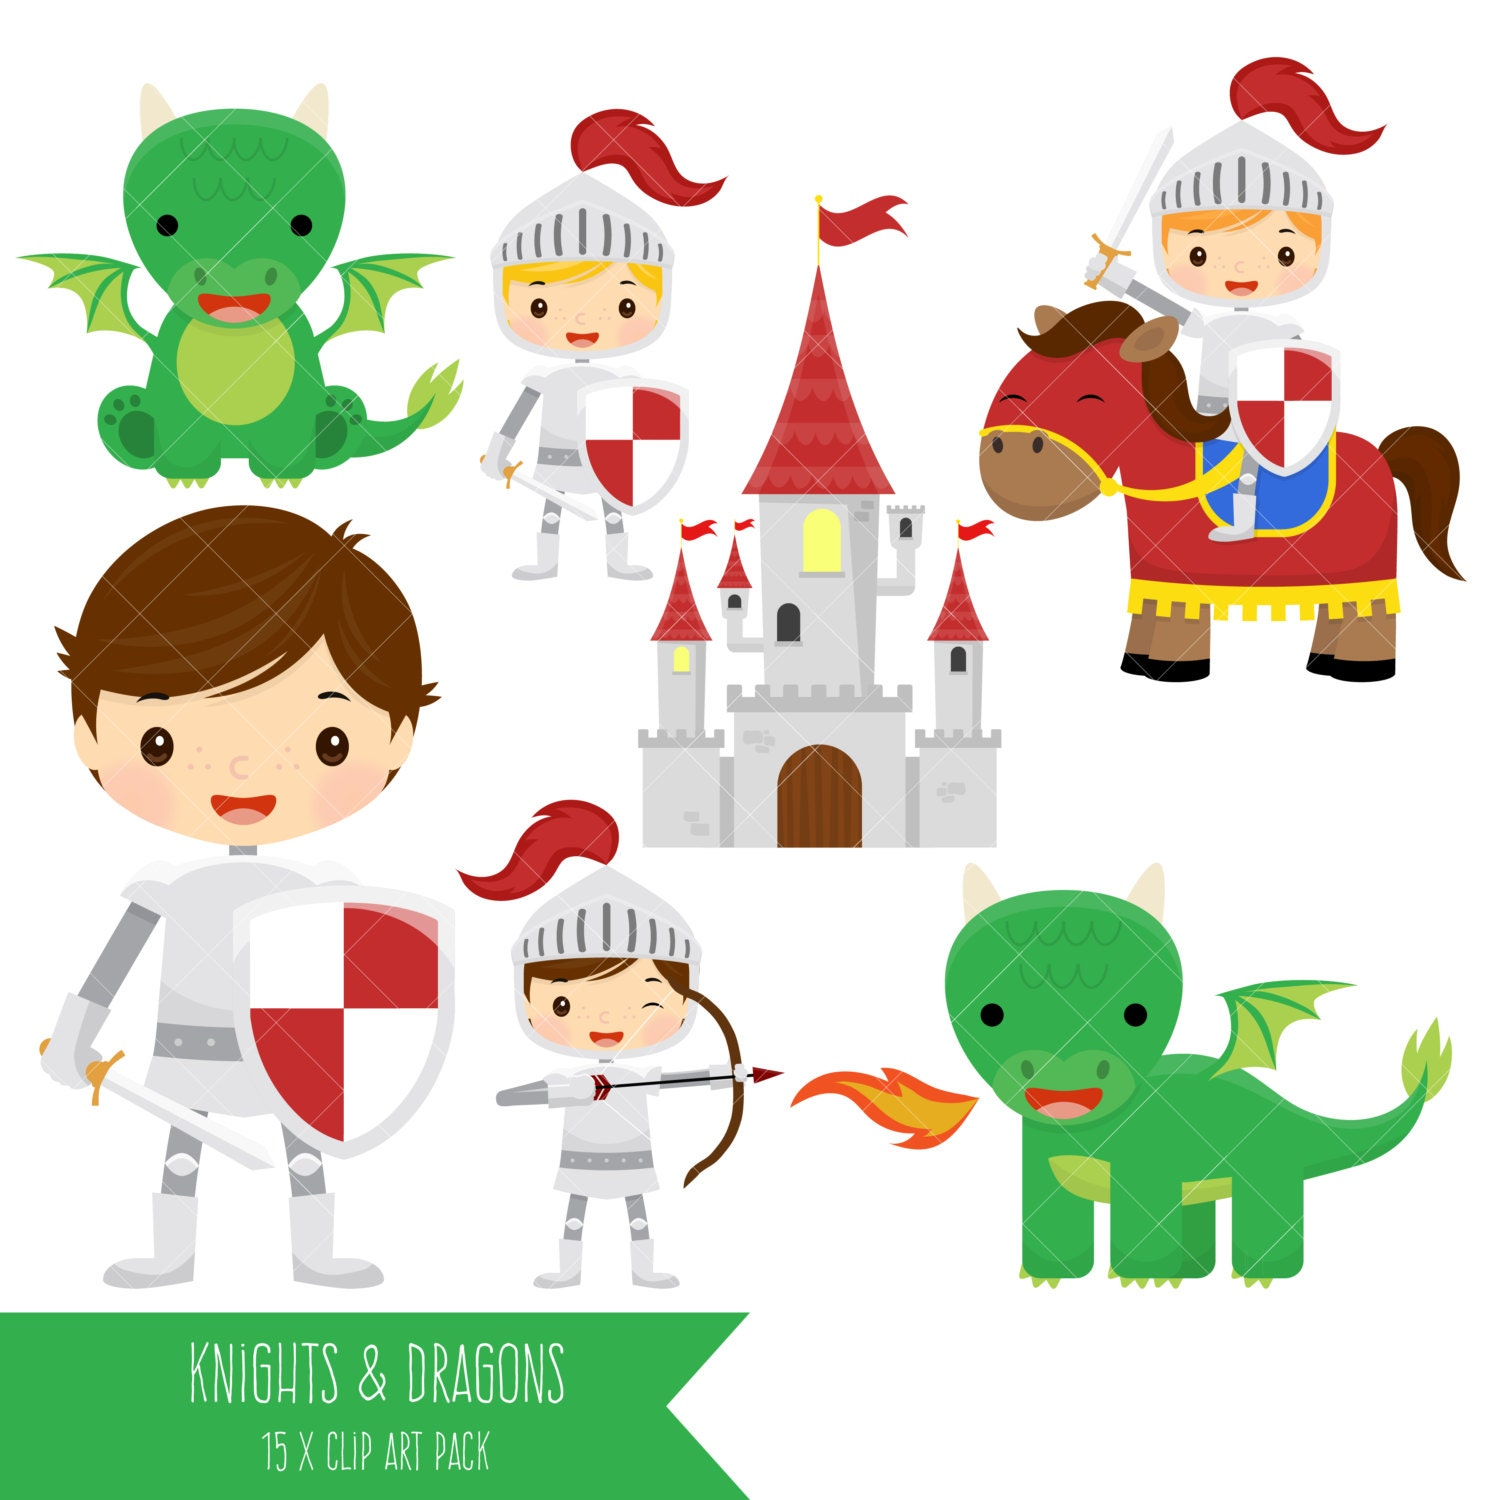 knights and dragons clipart cute dragons clipart fairytale rh etsy com Cute Baby Dragons Cute Dragon Drawings